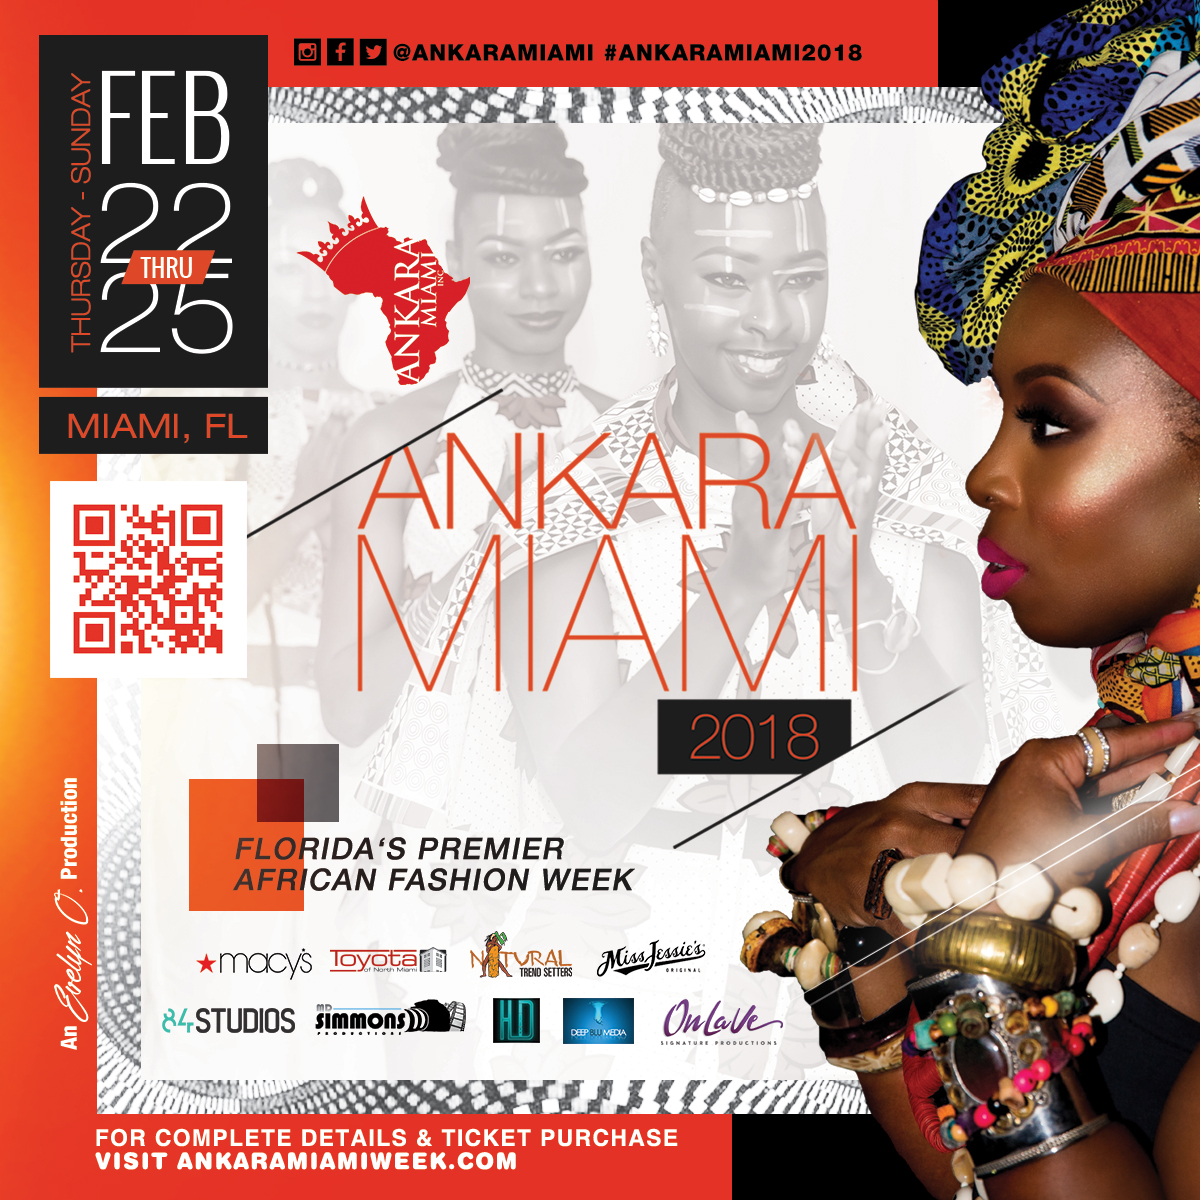 Ankara Miami 2018 Florida S Premier African Fashion Week